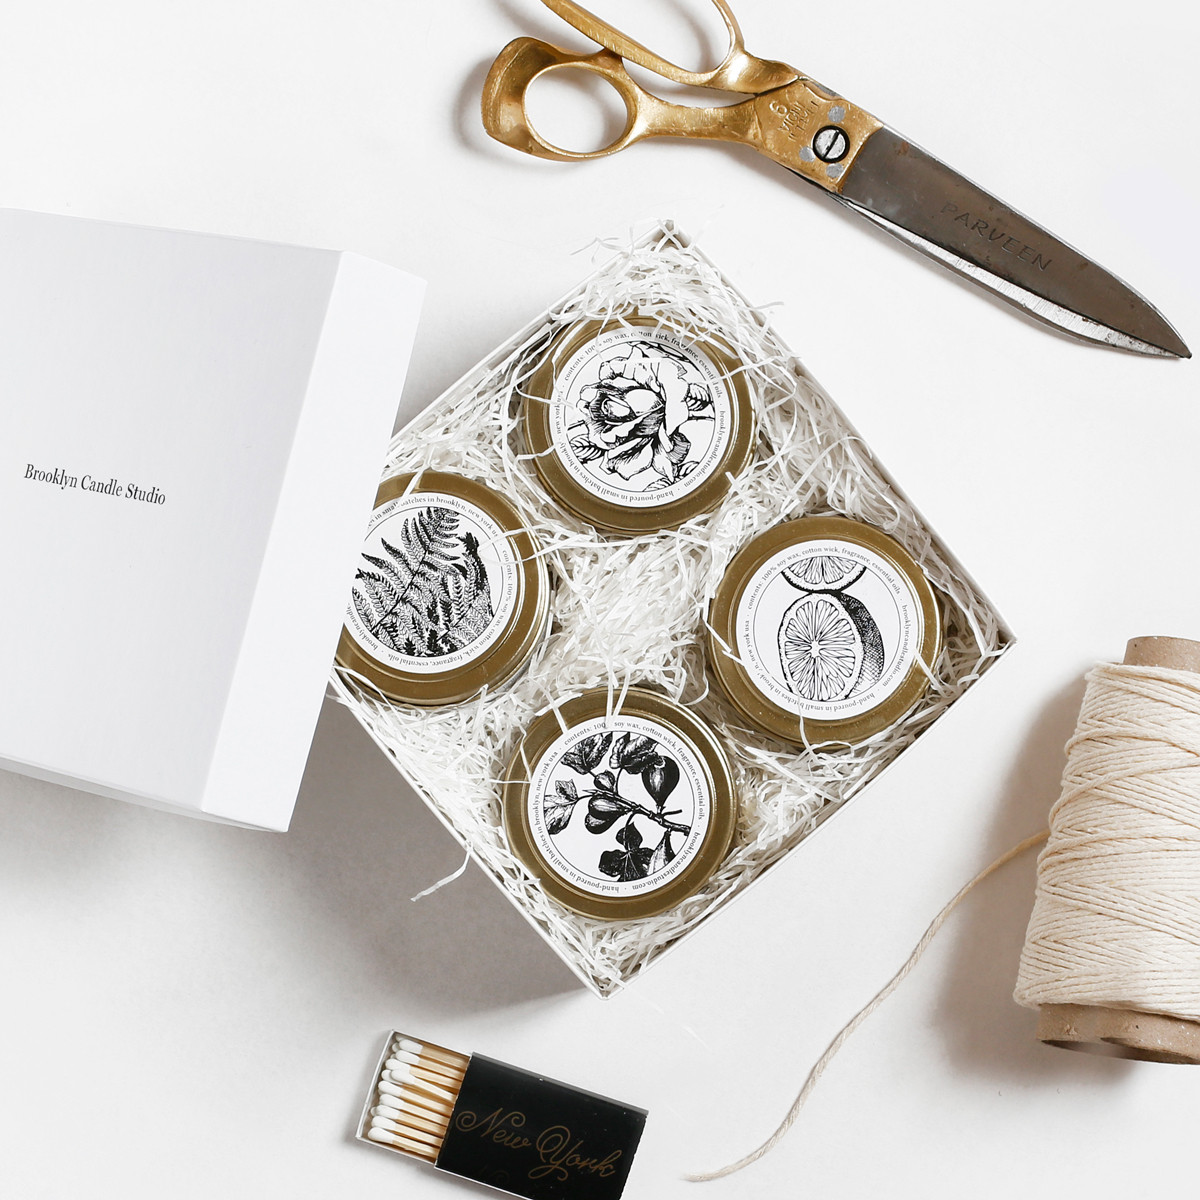 B  rooklyn Candle Studio | Pick 4 Gold Travel Candles Boxed Set $55